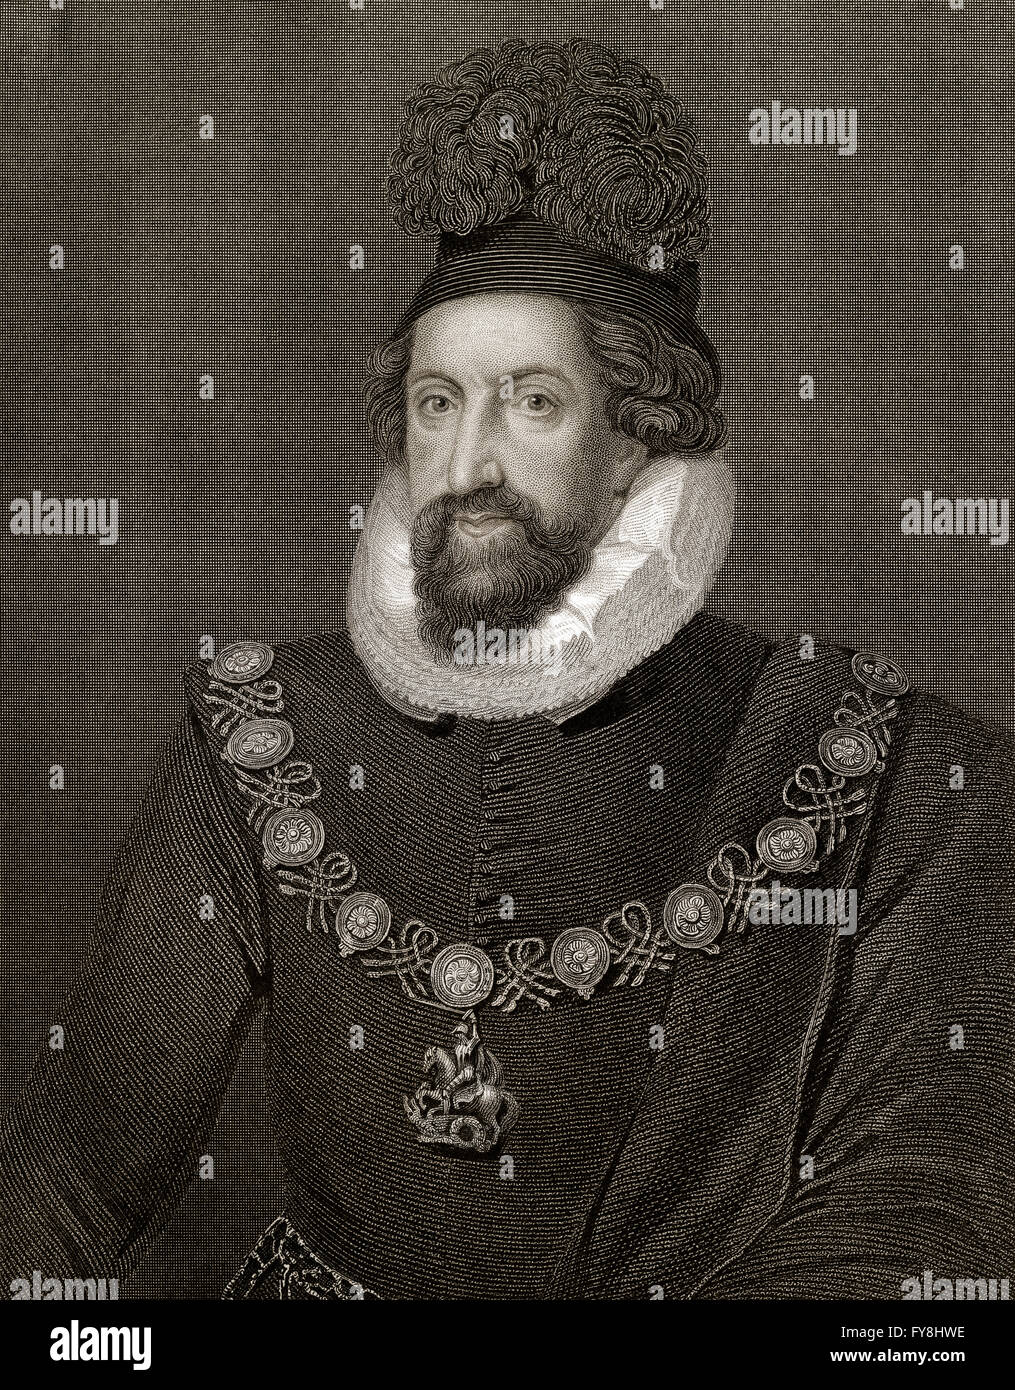 Admiral Thomas Howard, 1st Earl of Suffolk, 1561-1626, an English aristocrat Stock Photo